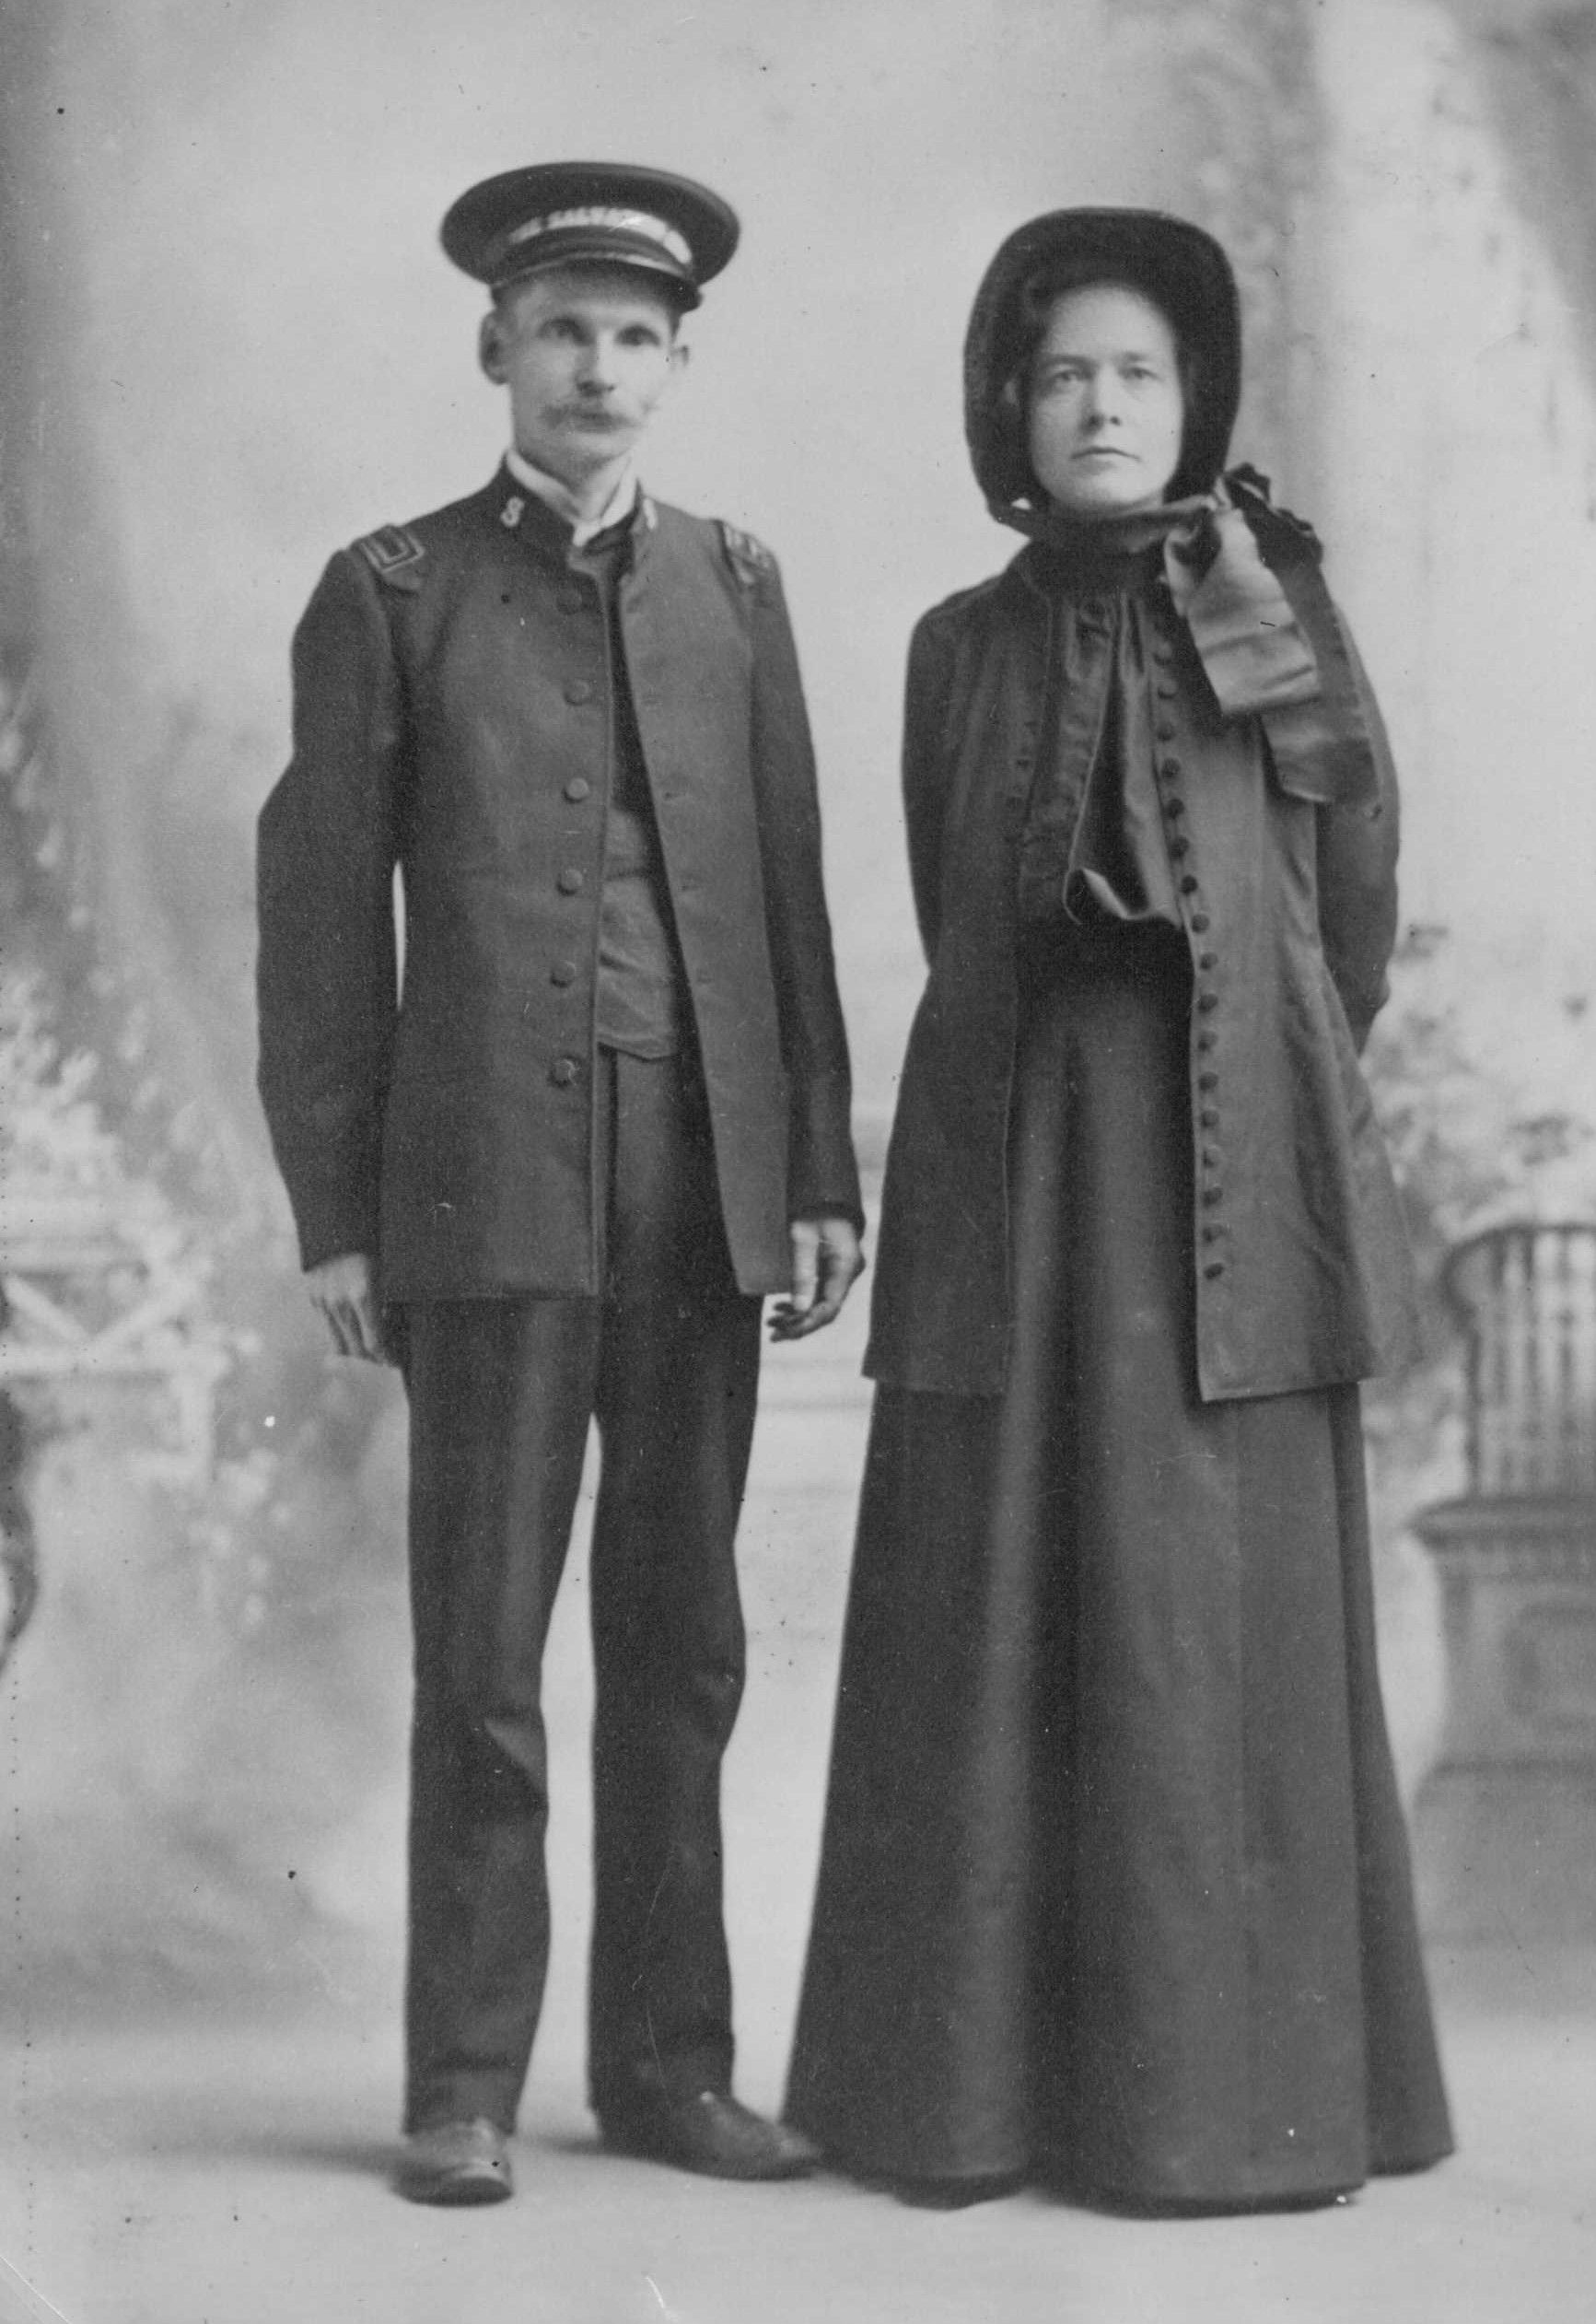 This Is My Grandparent S Wedding Picture 1890 Dressed In Their Salvation Army Uniforms Salvation Army Sally Army Army History